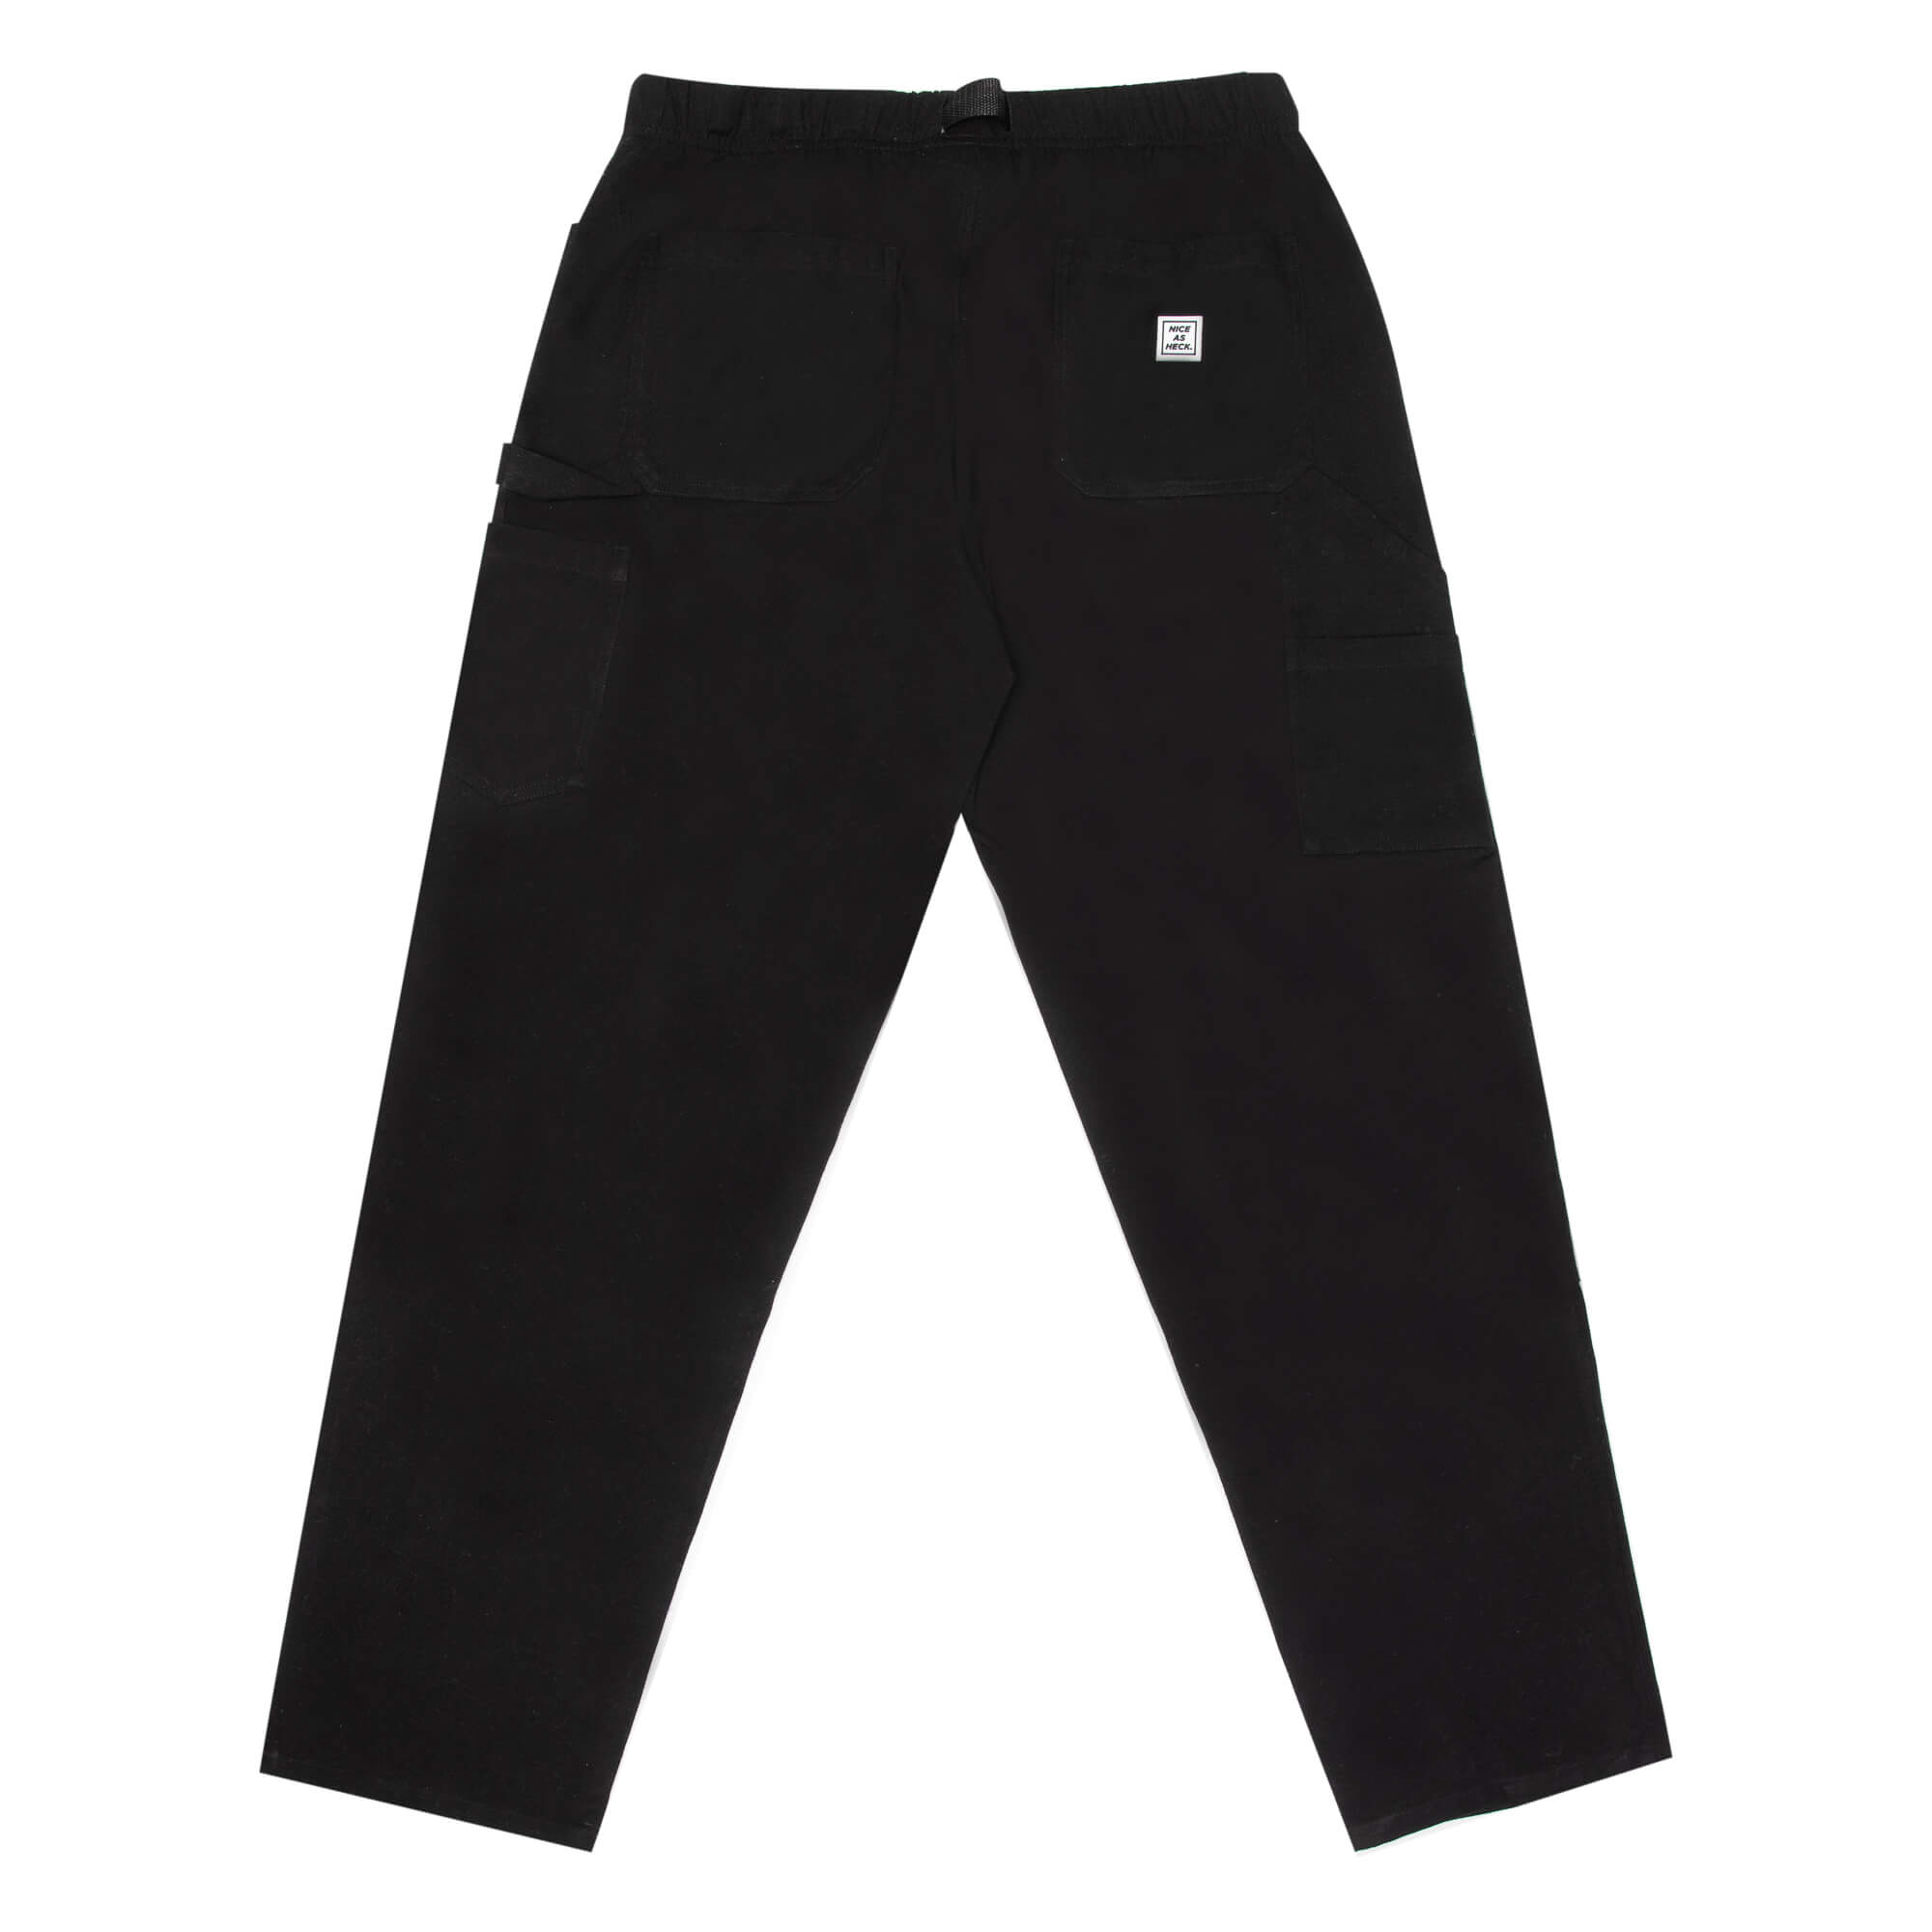 back view of the black wood worker pants